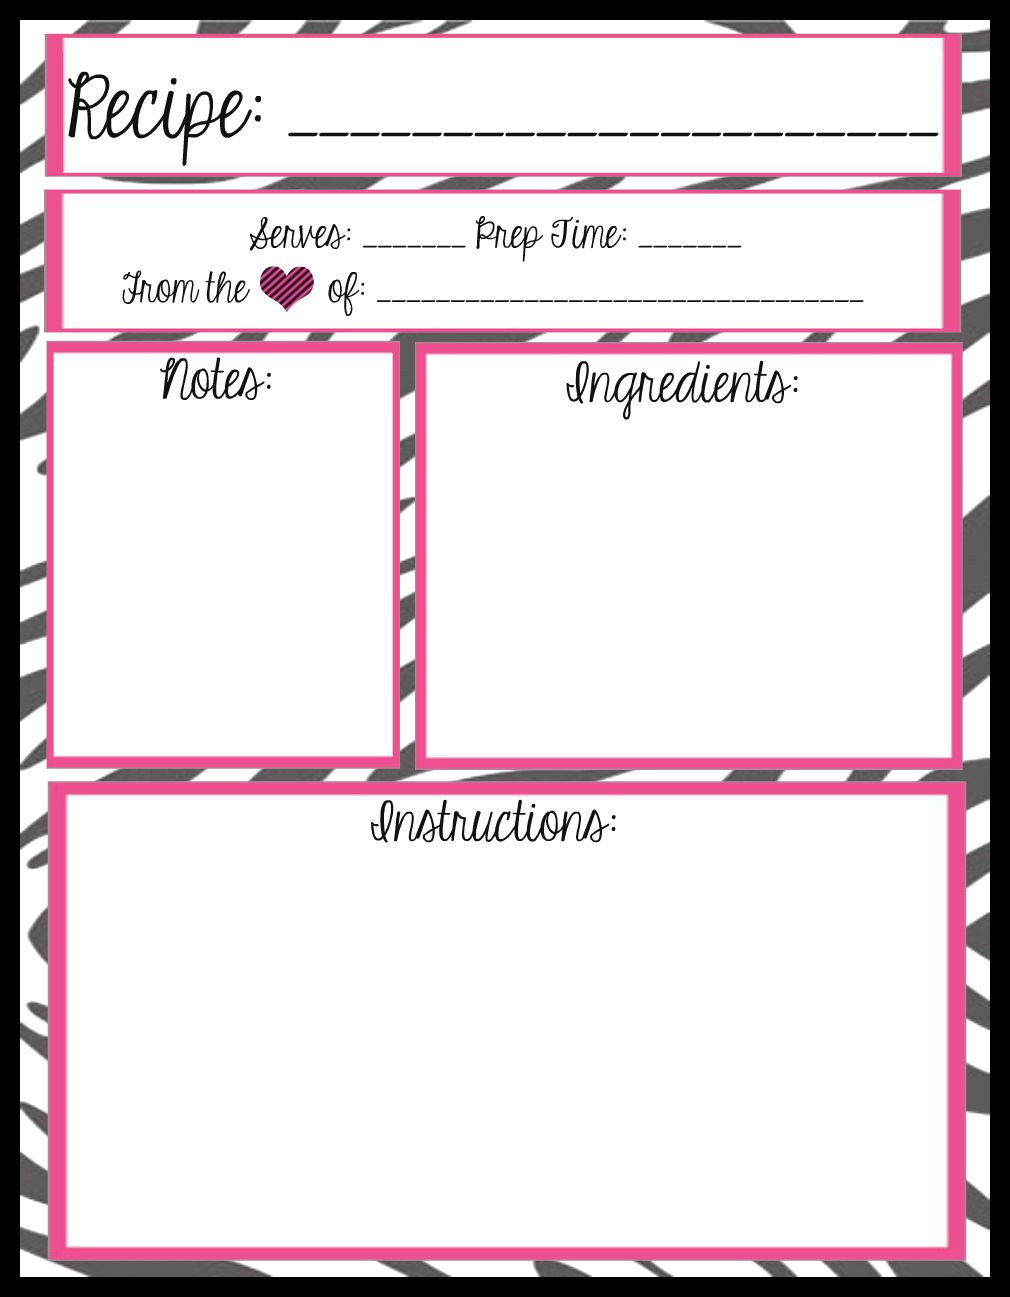 Mesa s Place Full Page Recipe Templates [Free printables